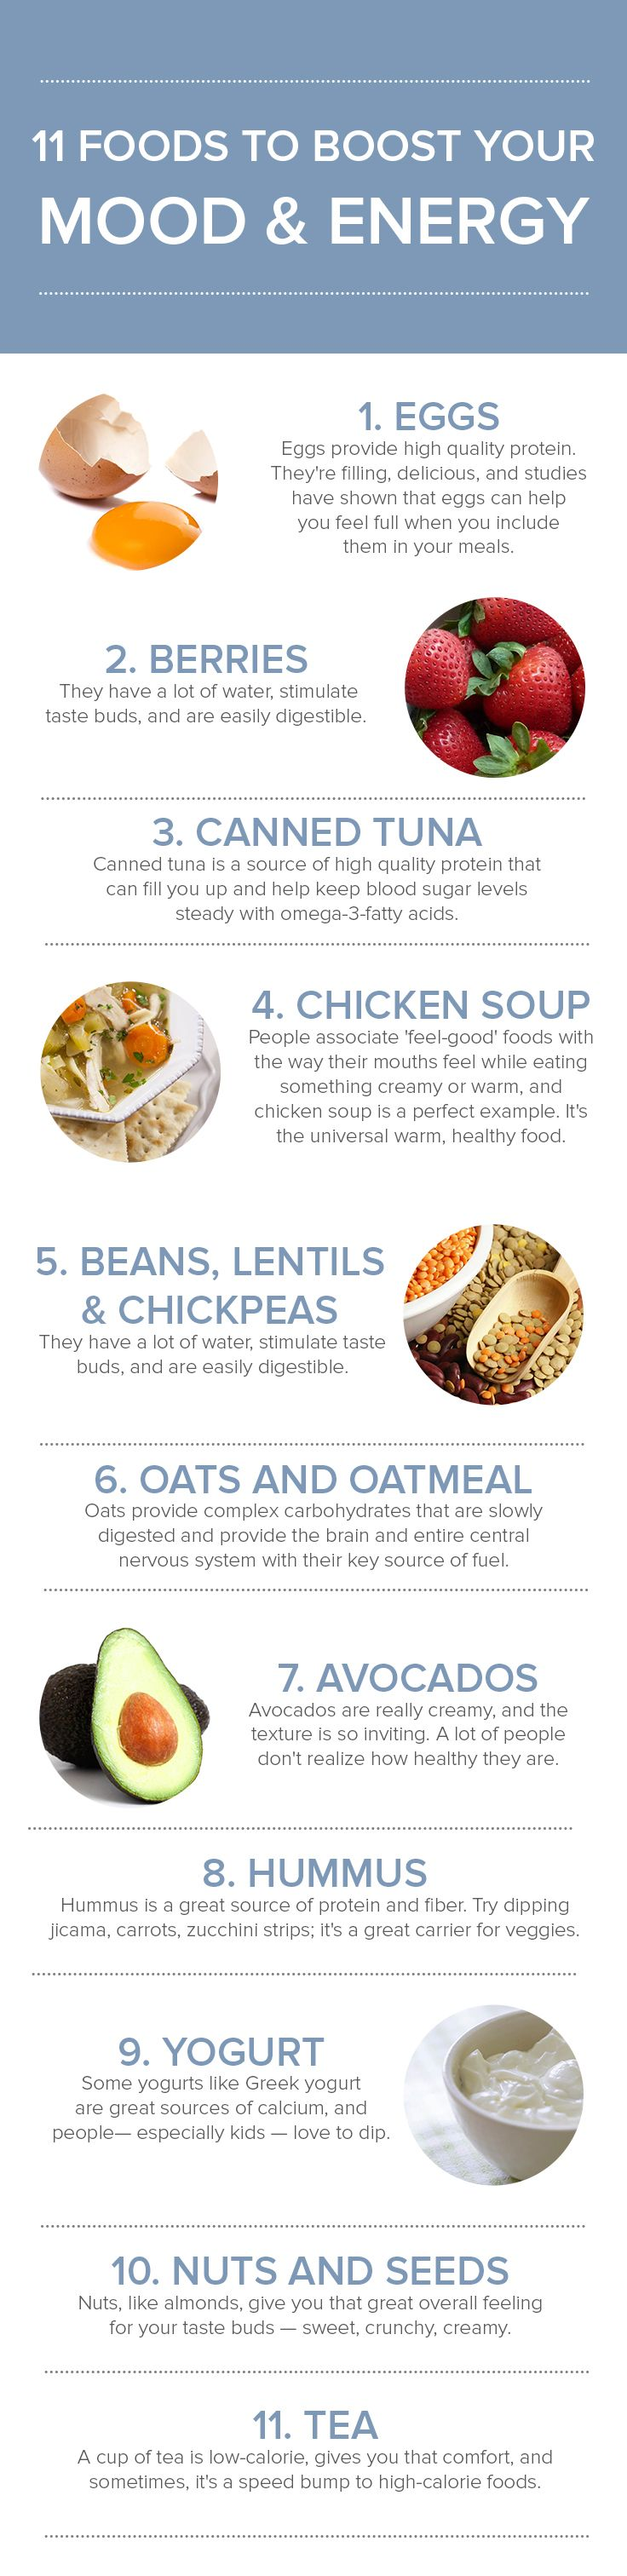 Try eating more eggs, berries, chicken soup and more. These foods are proven to help boost both your mood and energy.